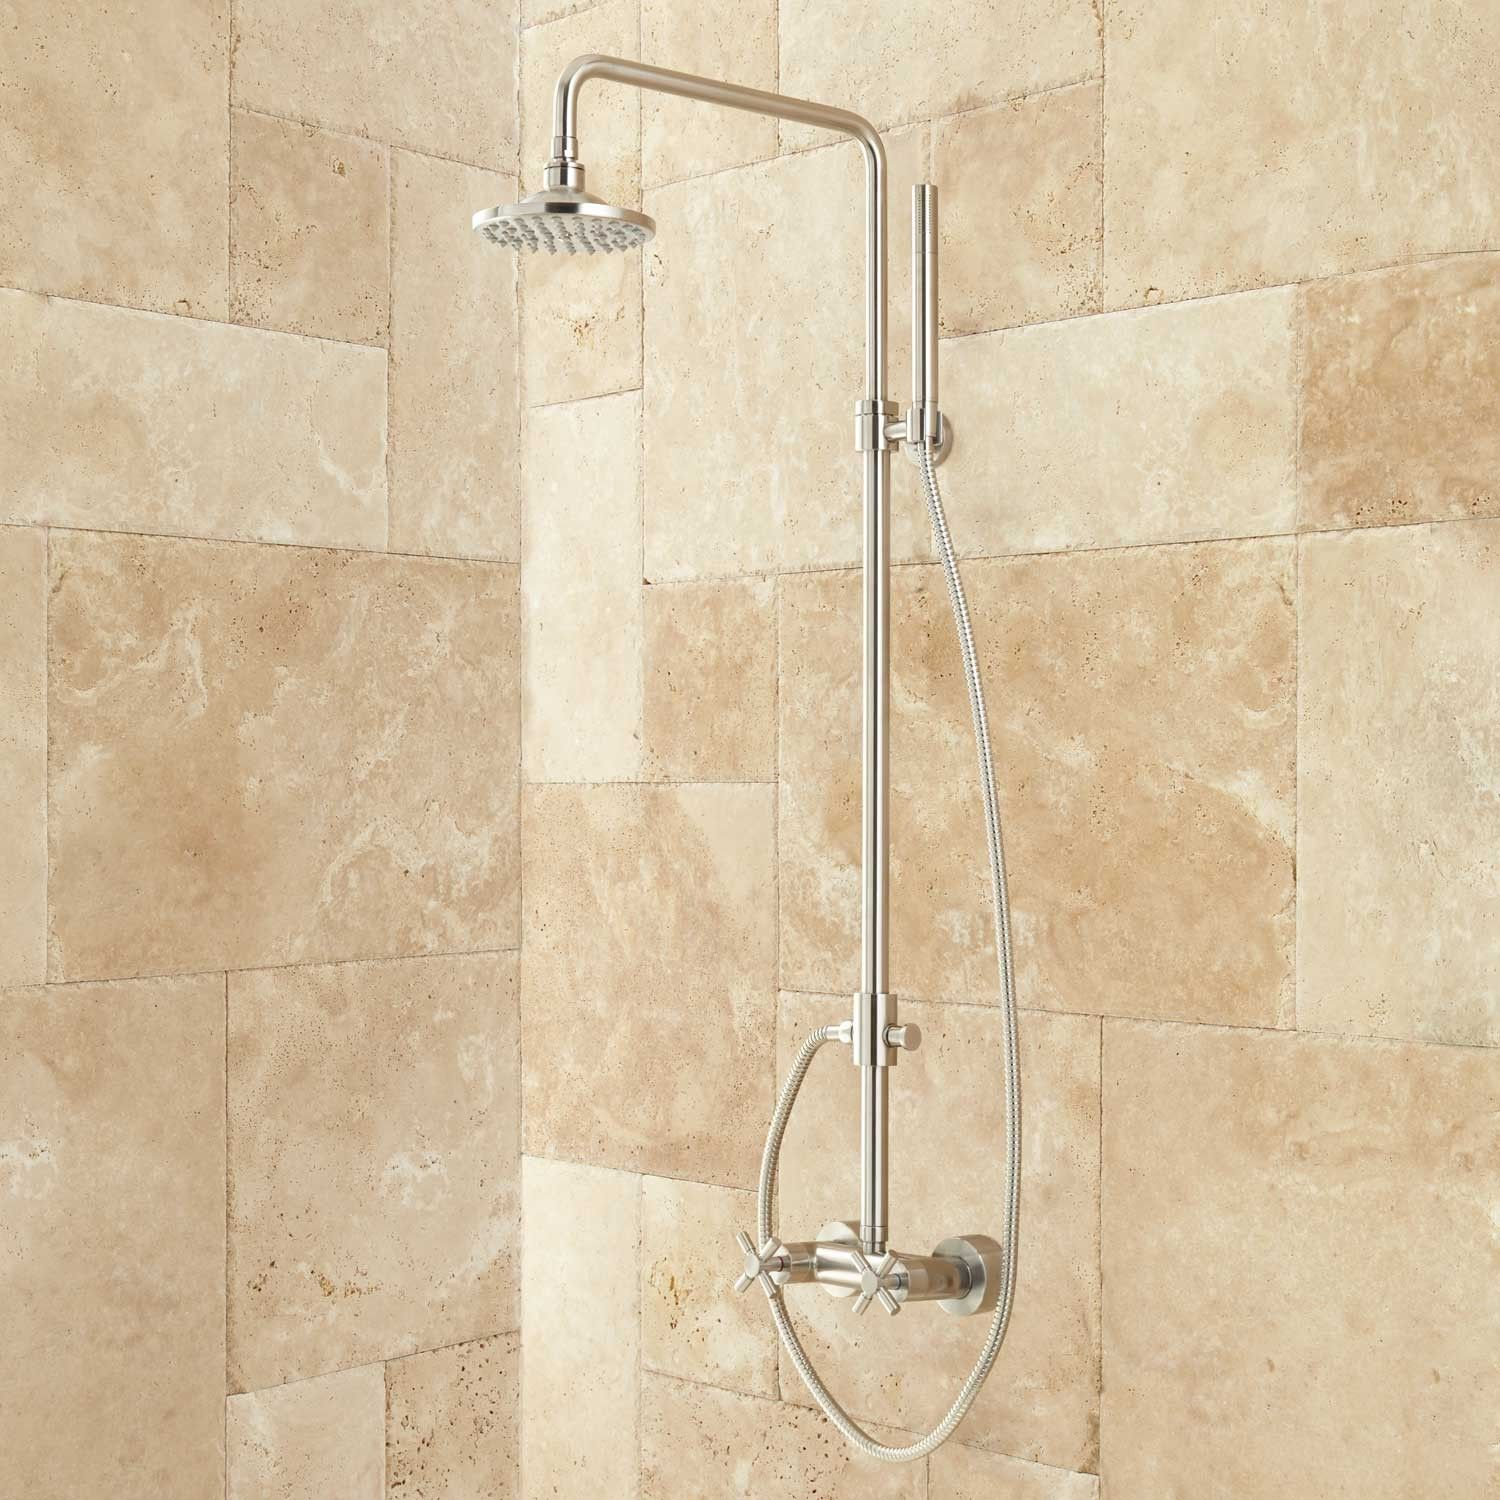 Bathroom shower pipe - Stiles Exposed Pipe Shower System With Rainfall Shower Head Hand Shower